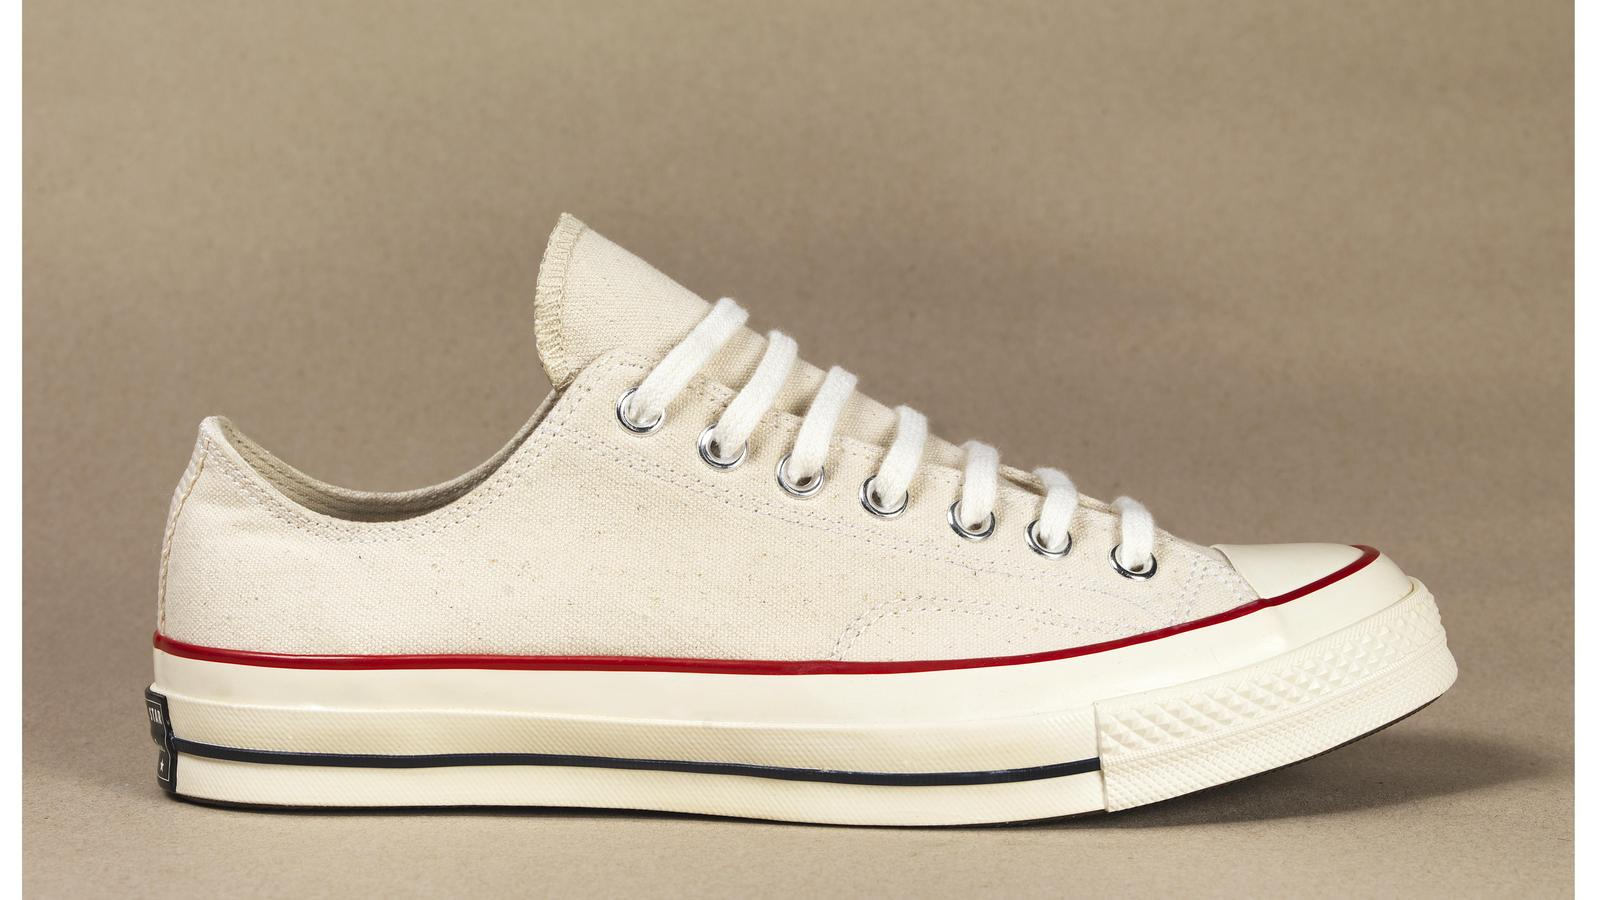 Converse 1970s Chuck Taylor All Star White Original